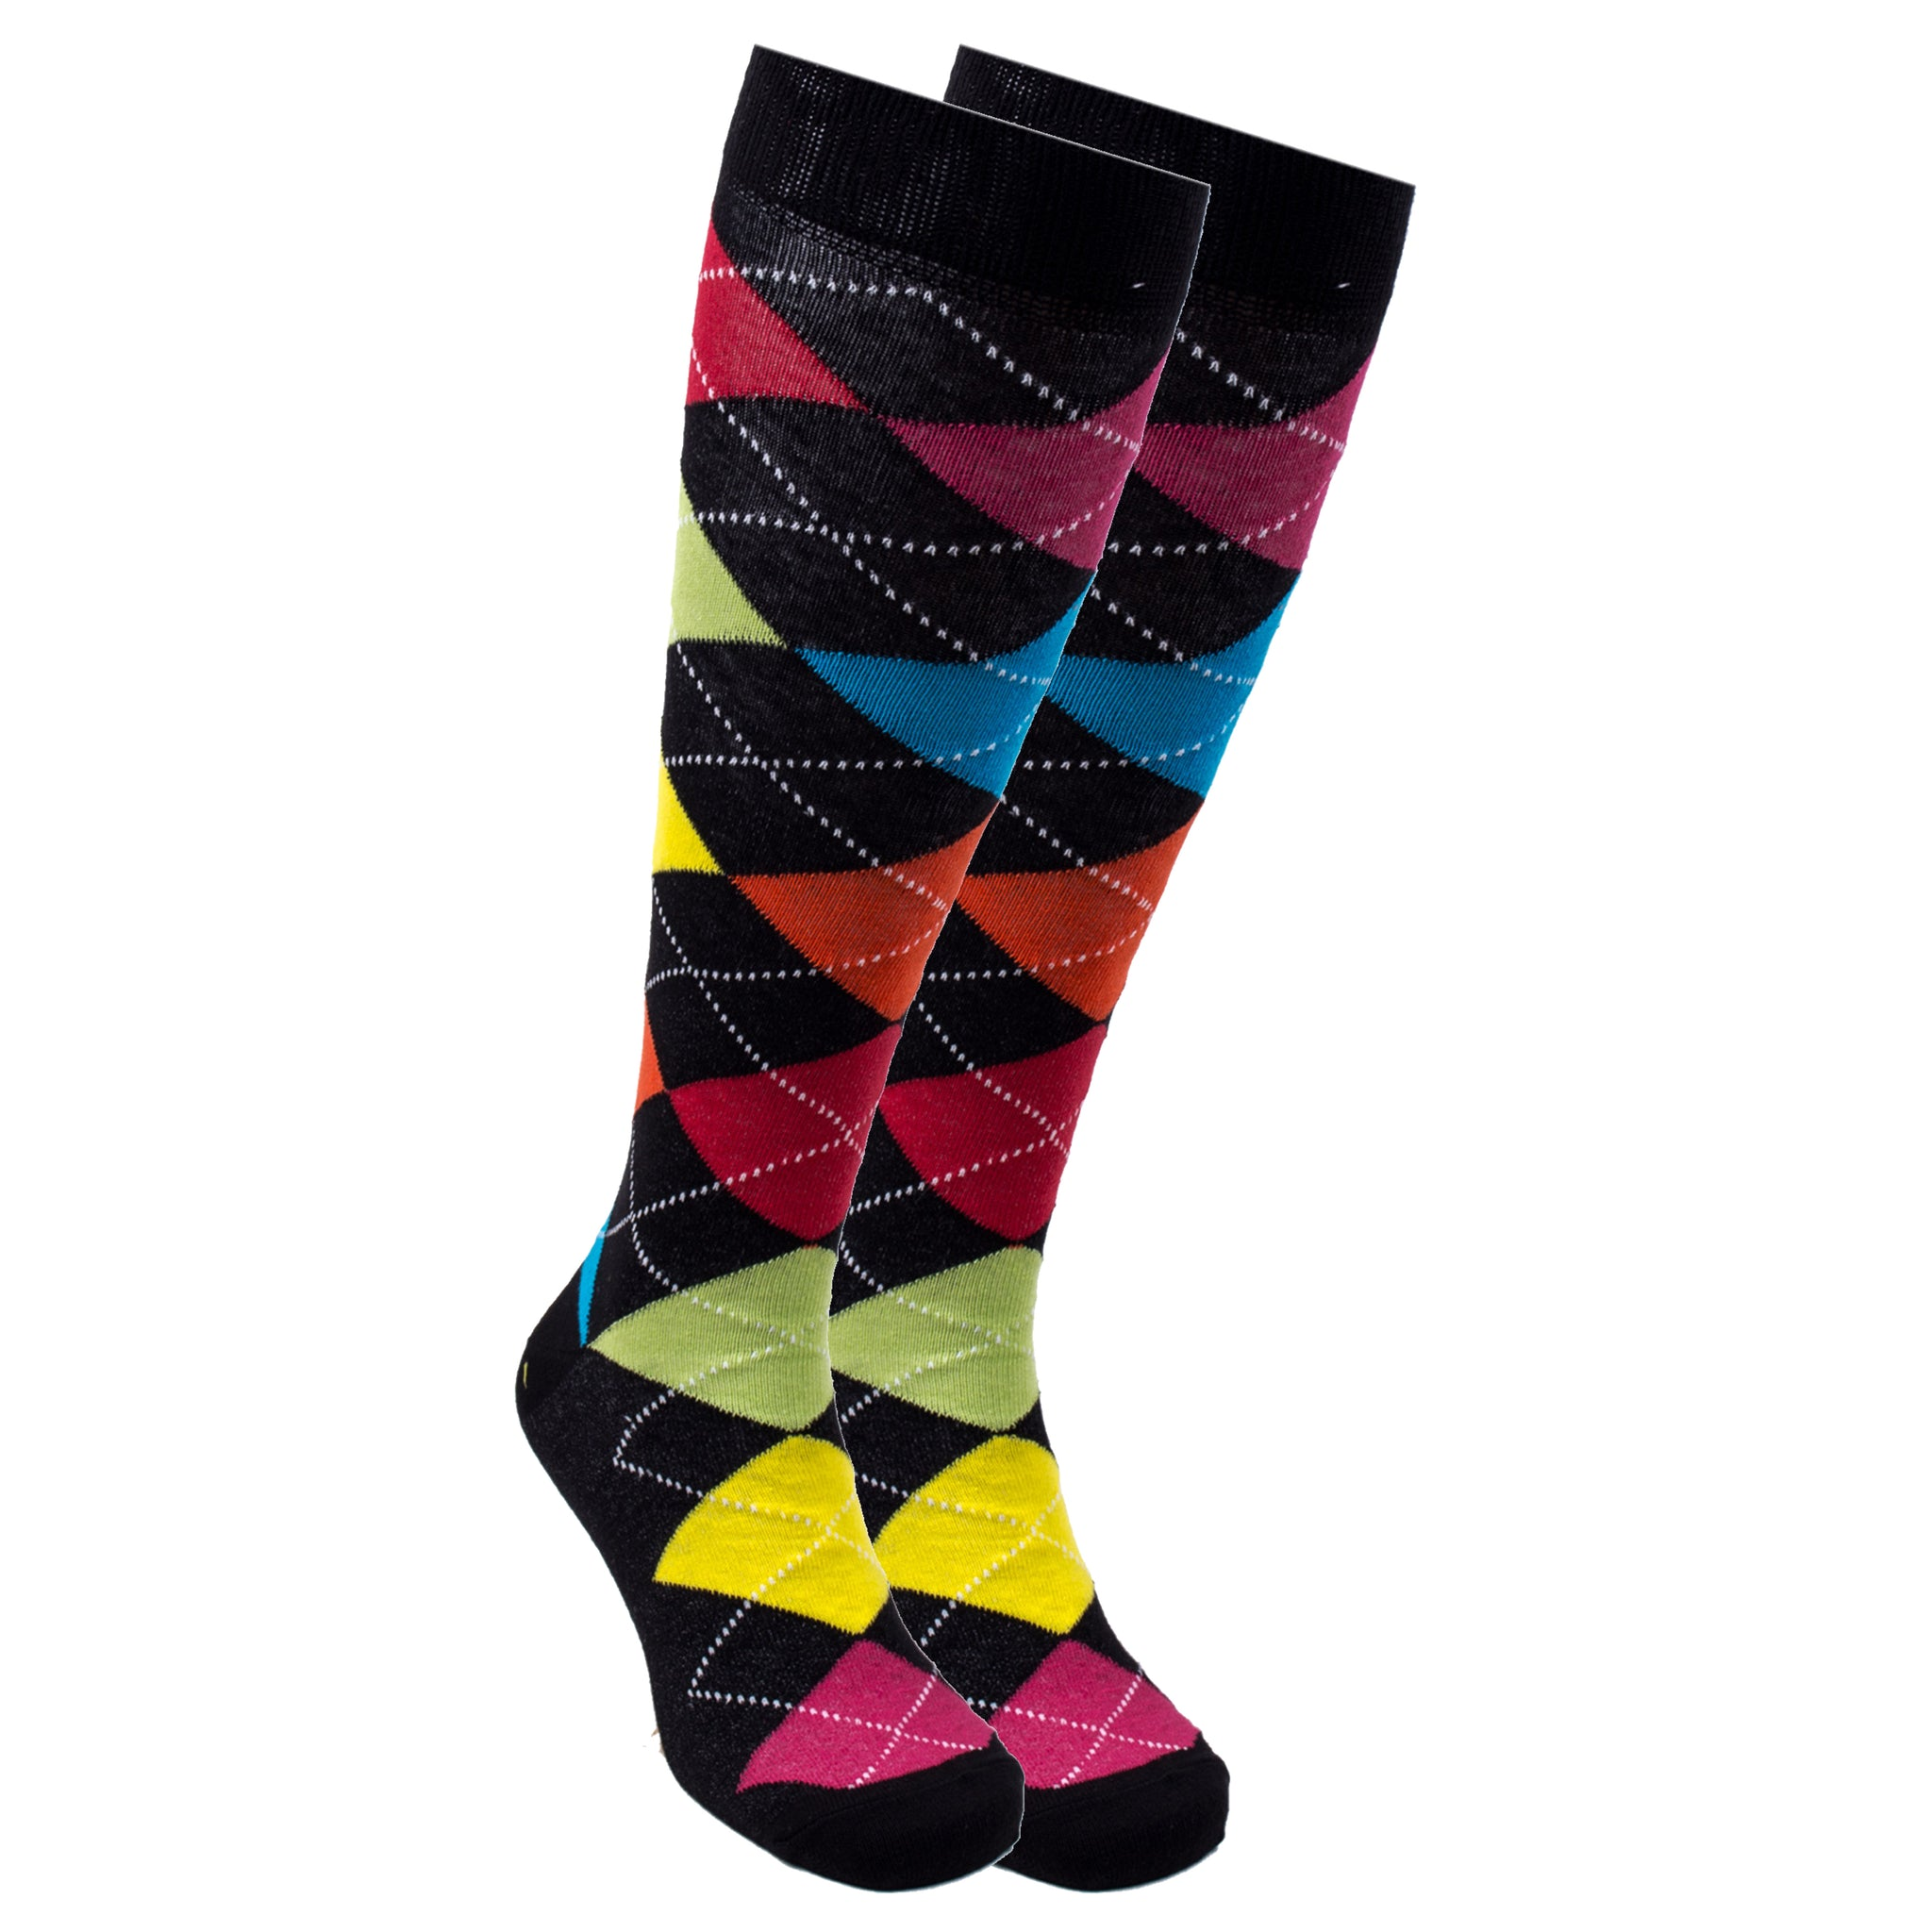 Women's Mixed Black Argyle Knee High Socks